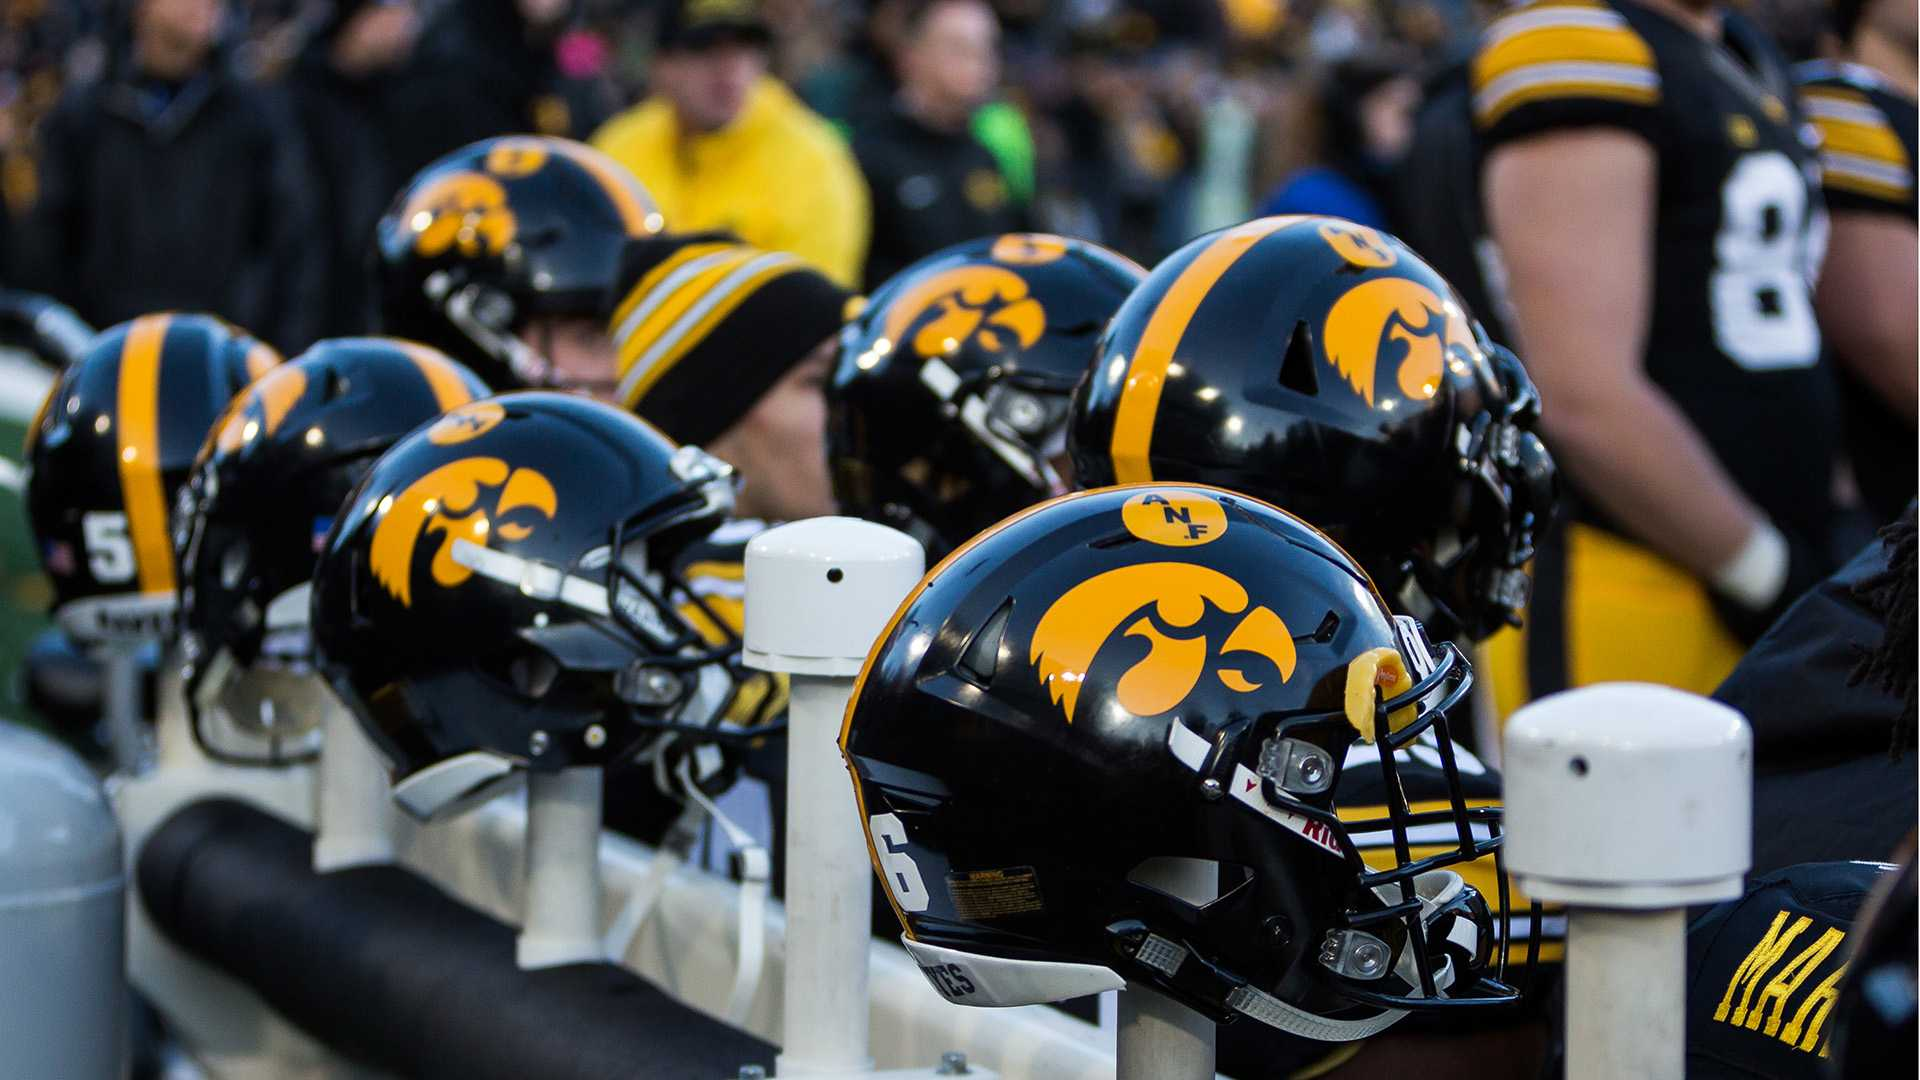 Iowa football helmets line the sidelines during a game against Purdue University on Saturday, Nov. 18, 2017. The Boilermakers defeated the Hawkeyes 24 to 15. (David Harmantas/The Daily Iowan)